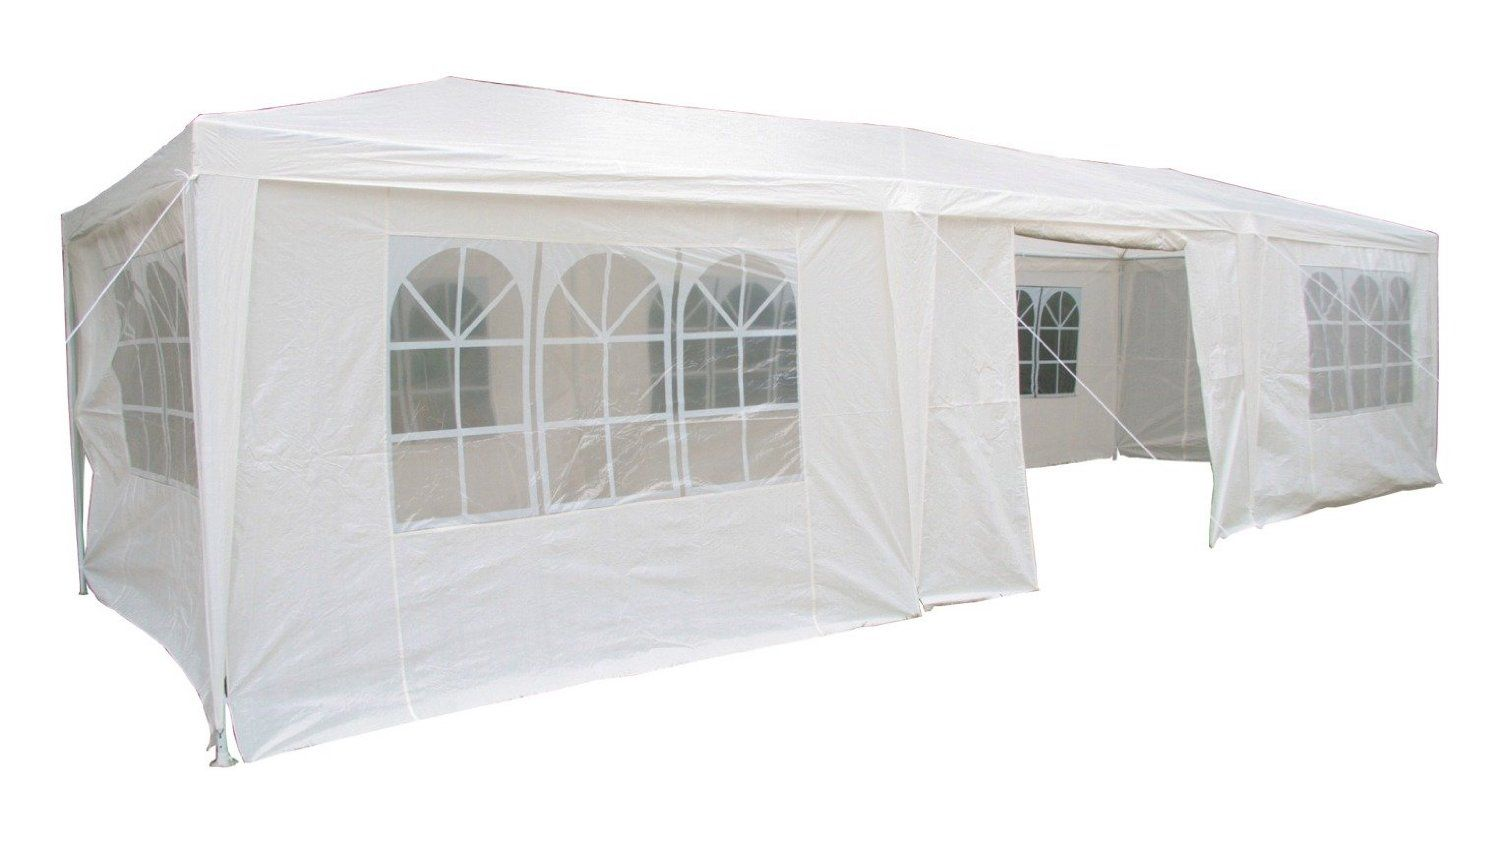 Airwave 3 x Party Tent Gazebo Marquee with 3 x Unique WindBars and Side Panels Waterproof Canopy White  sc 1 st  Pinterest & Airwave 3 x 9m Party Tent Gazebo Marquee with 3 x Unique WindBars ...